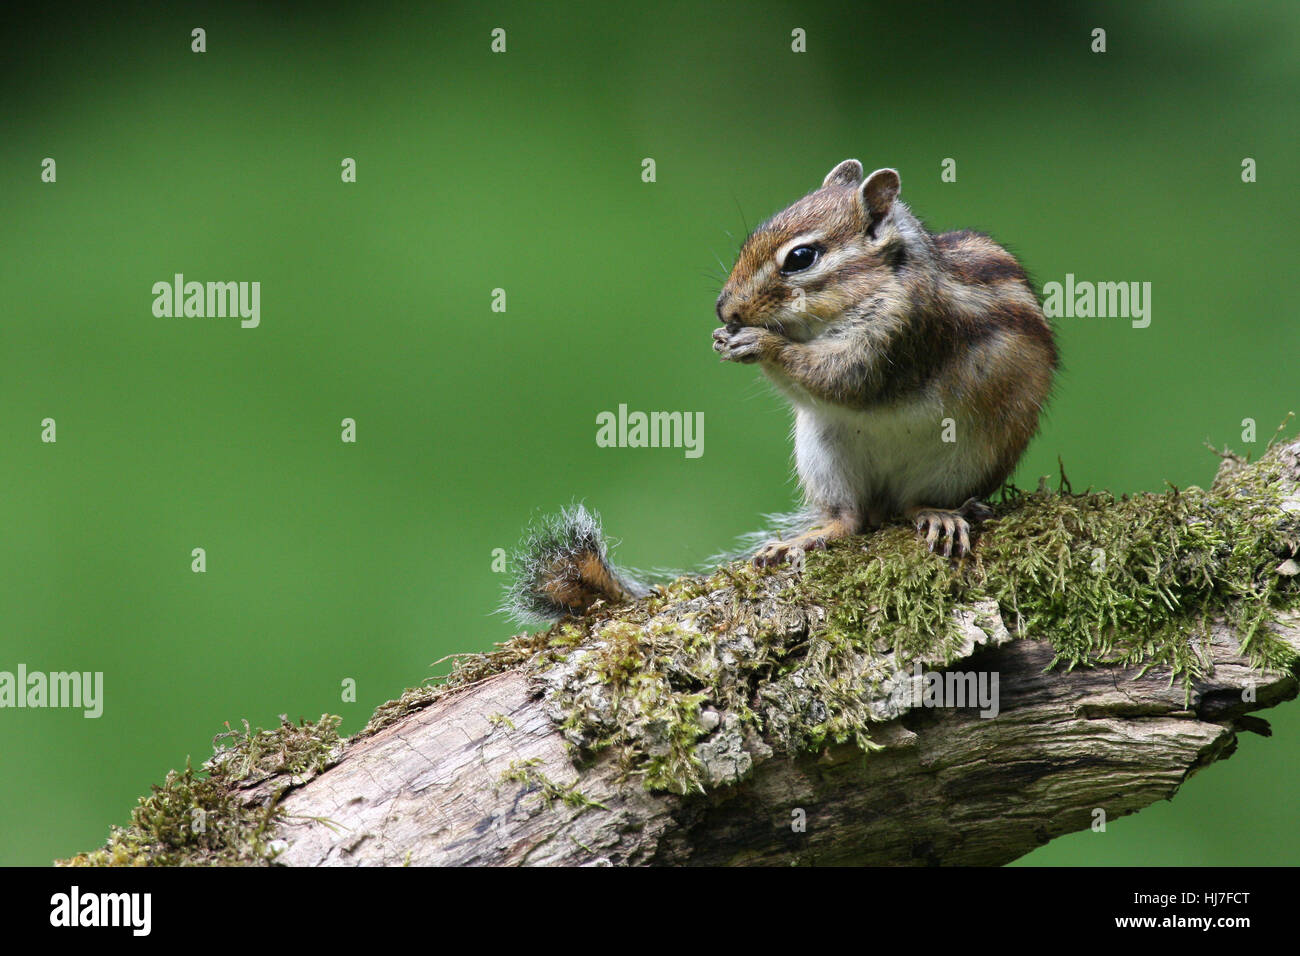 rodent, wildlife, squirrel, gnaw, maddening, pert, coquettish, cute, eating, - Stock Image